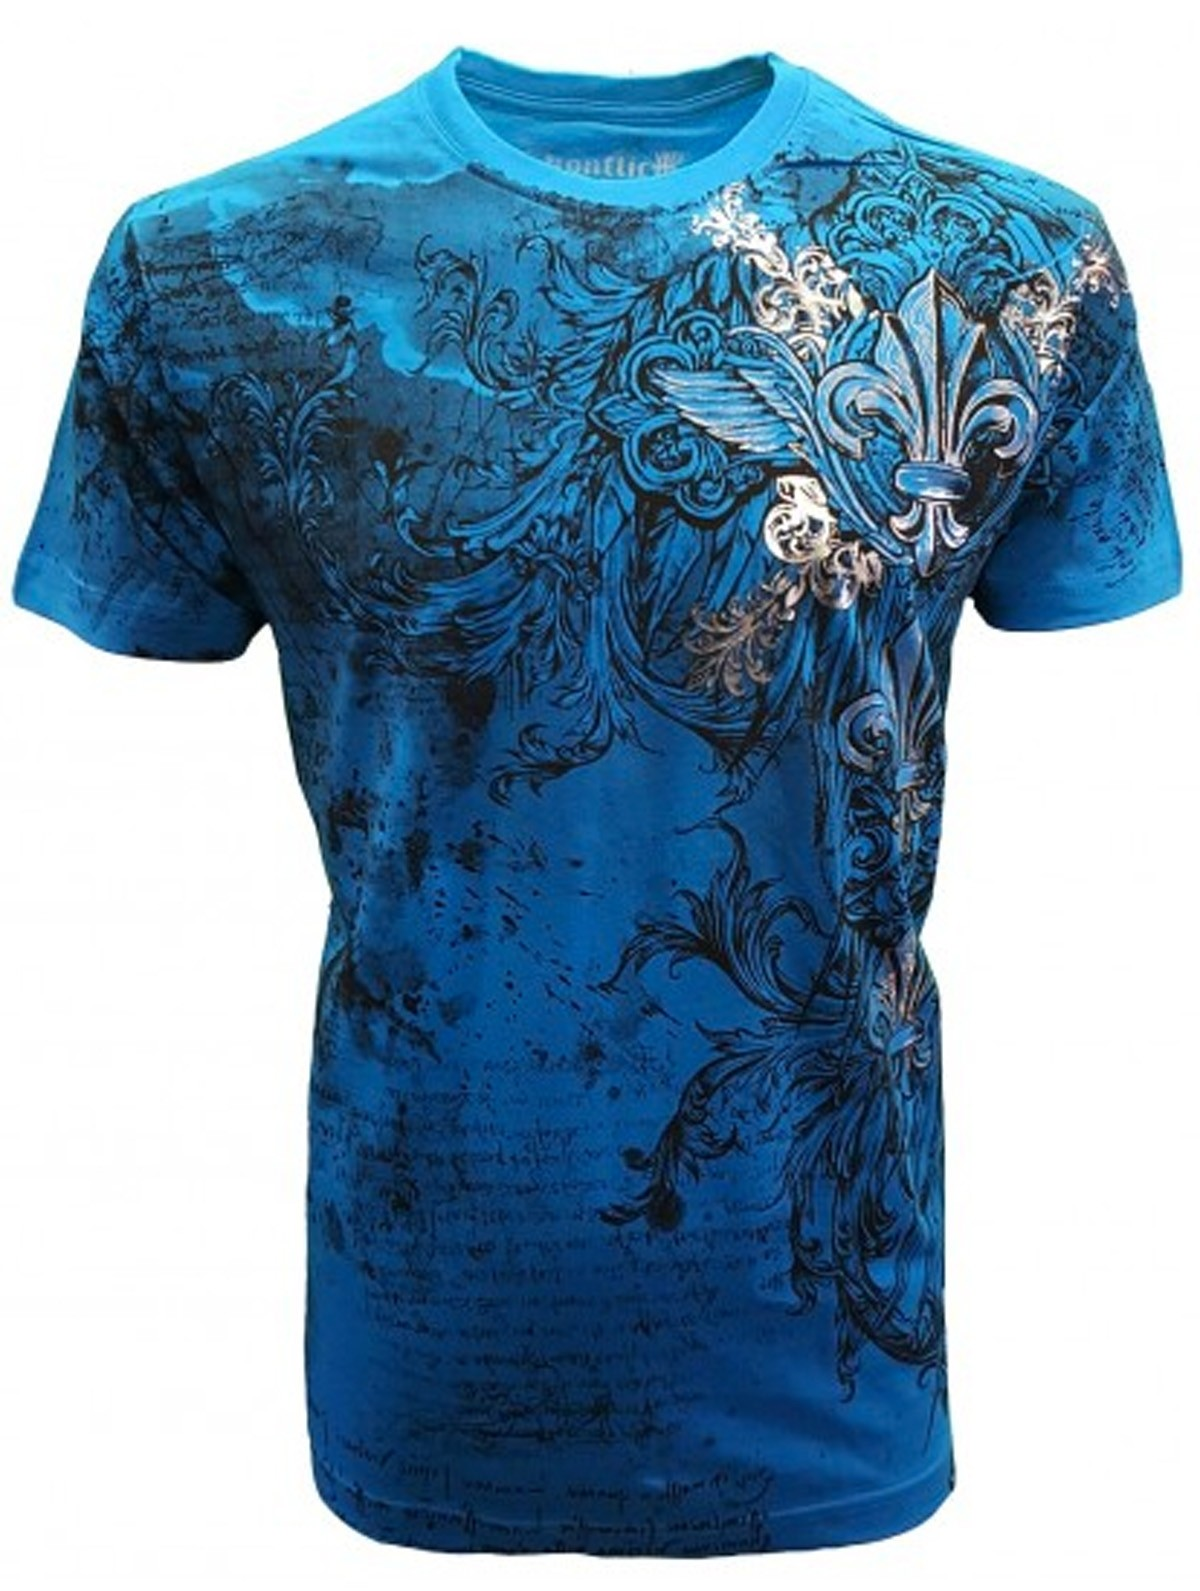 Konflic Clothing - Royal Fleur De Lis T-Shirt